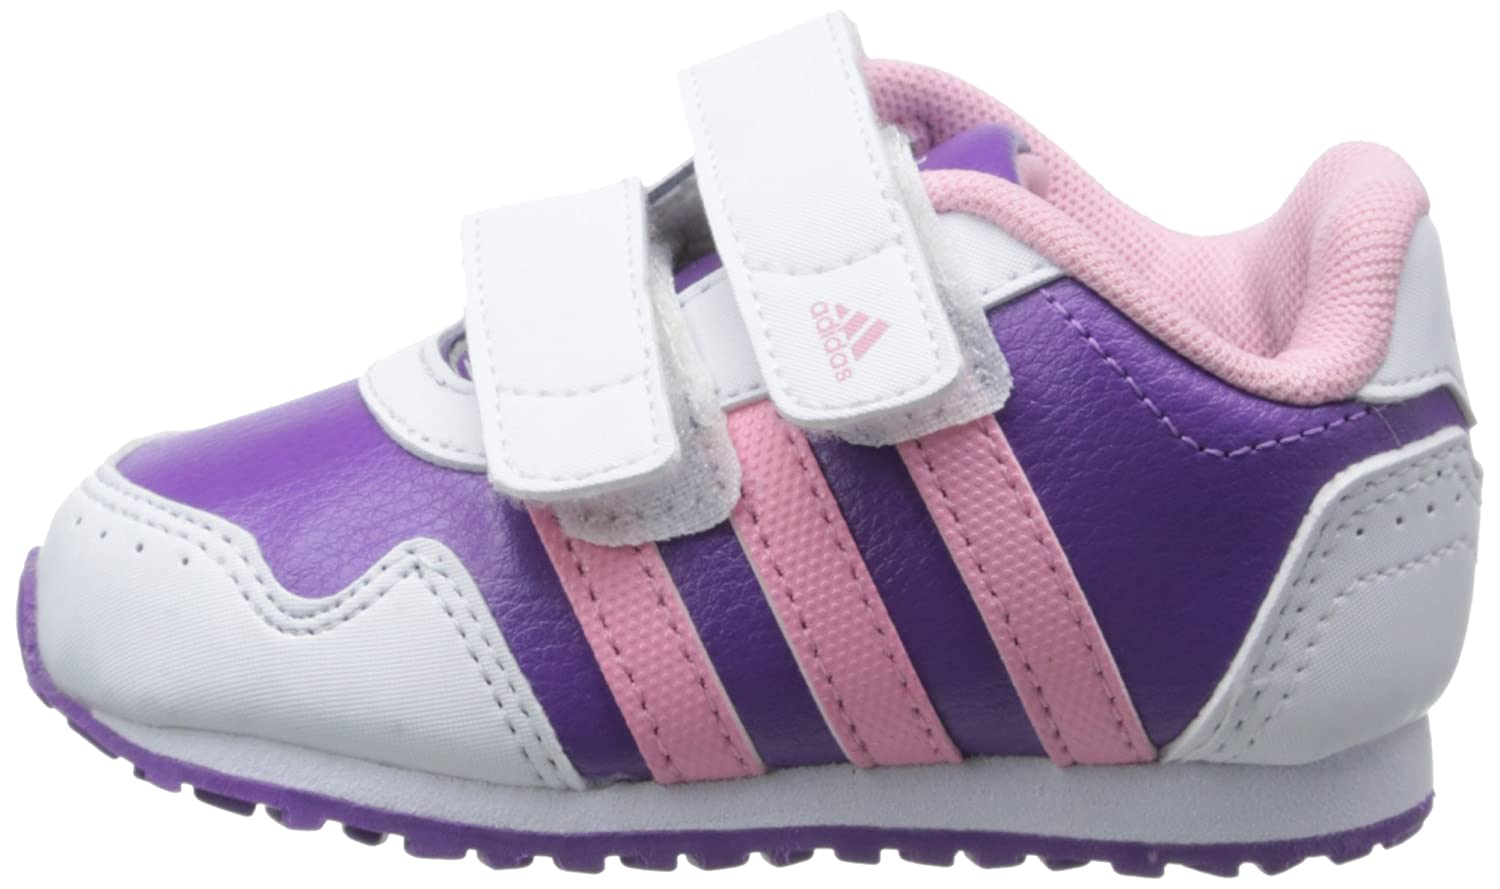 sneakers for cheap db226 9fdaf adidas Performance Snice 2 CF I G96930 Babys Unisex-Baby ...